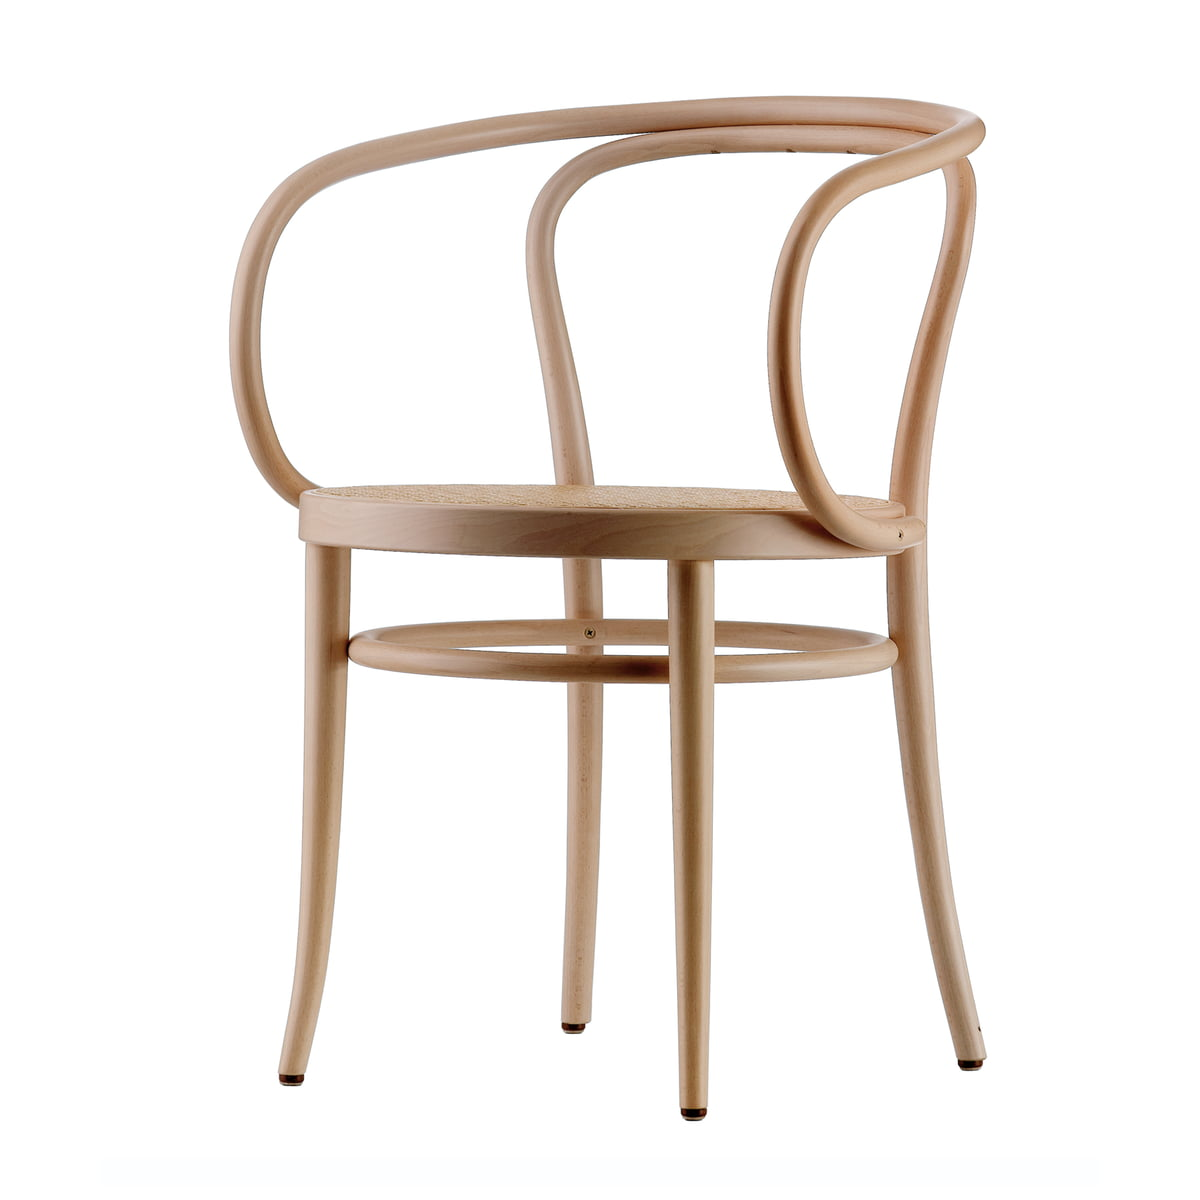 m model tavern product bistro classic chair chairs upholstered wood cafe deitz pin hair fully thonet traditional bentwood